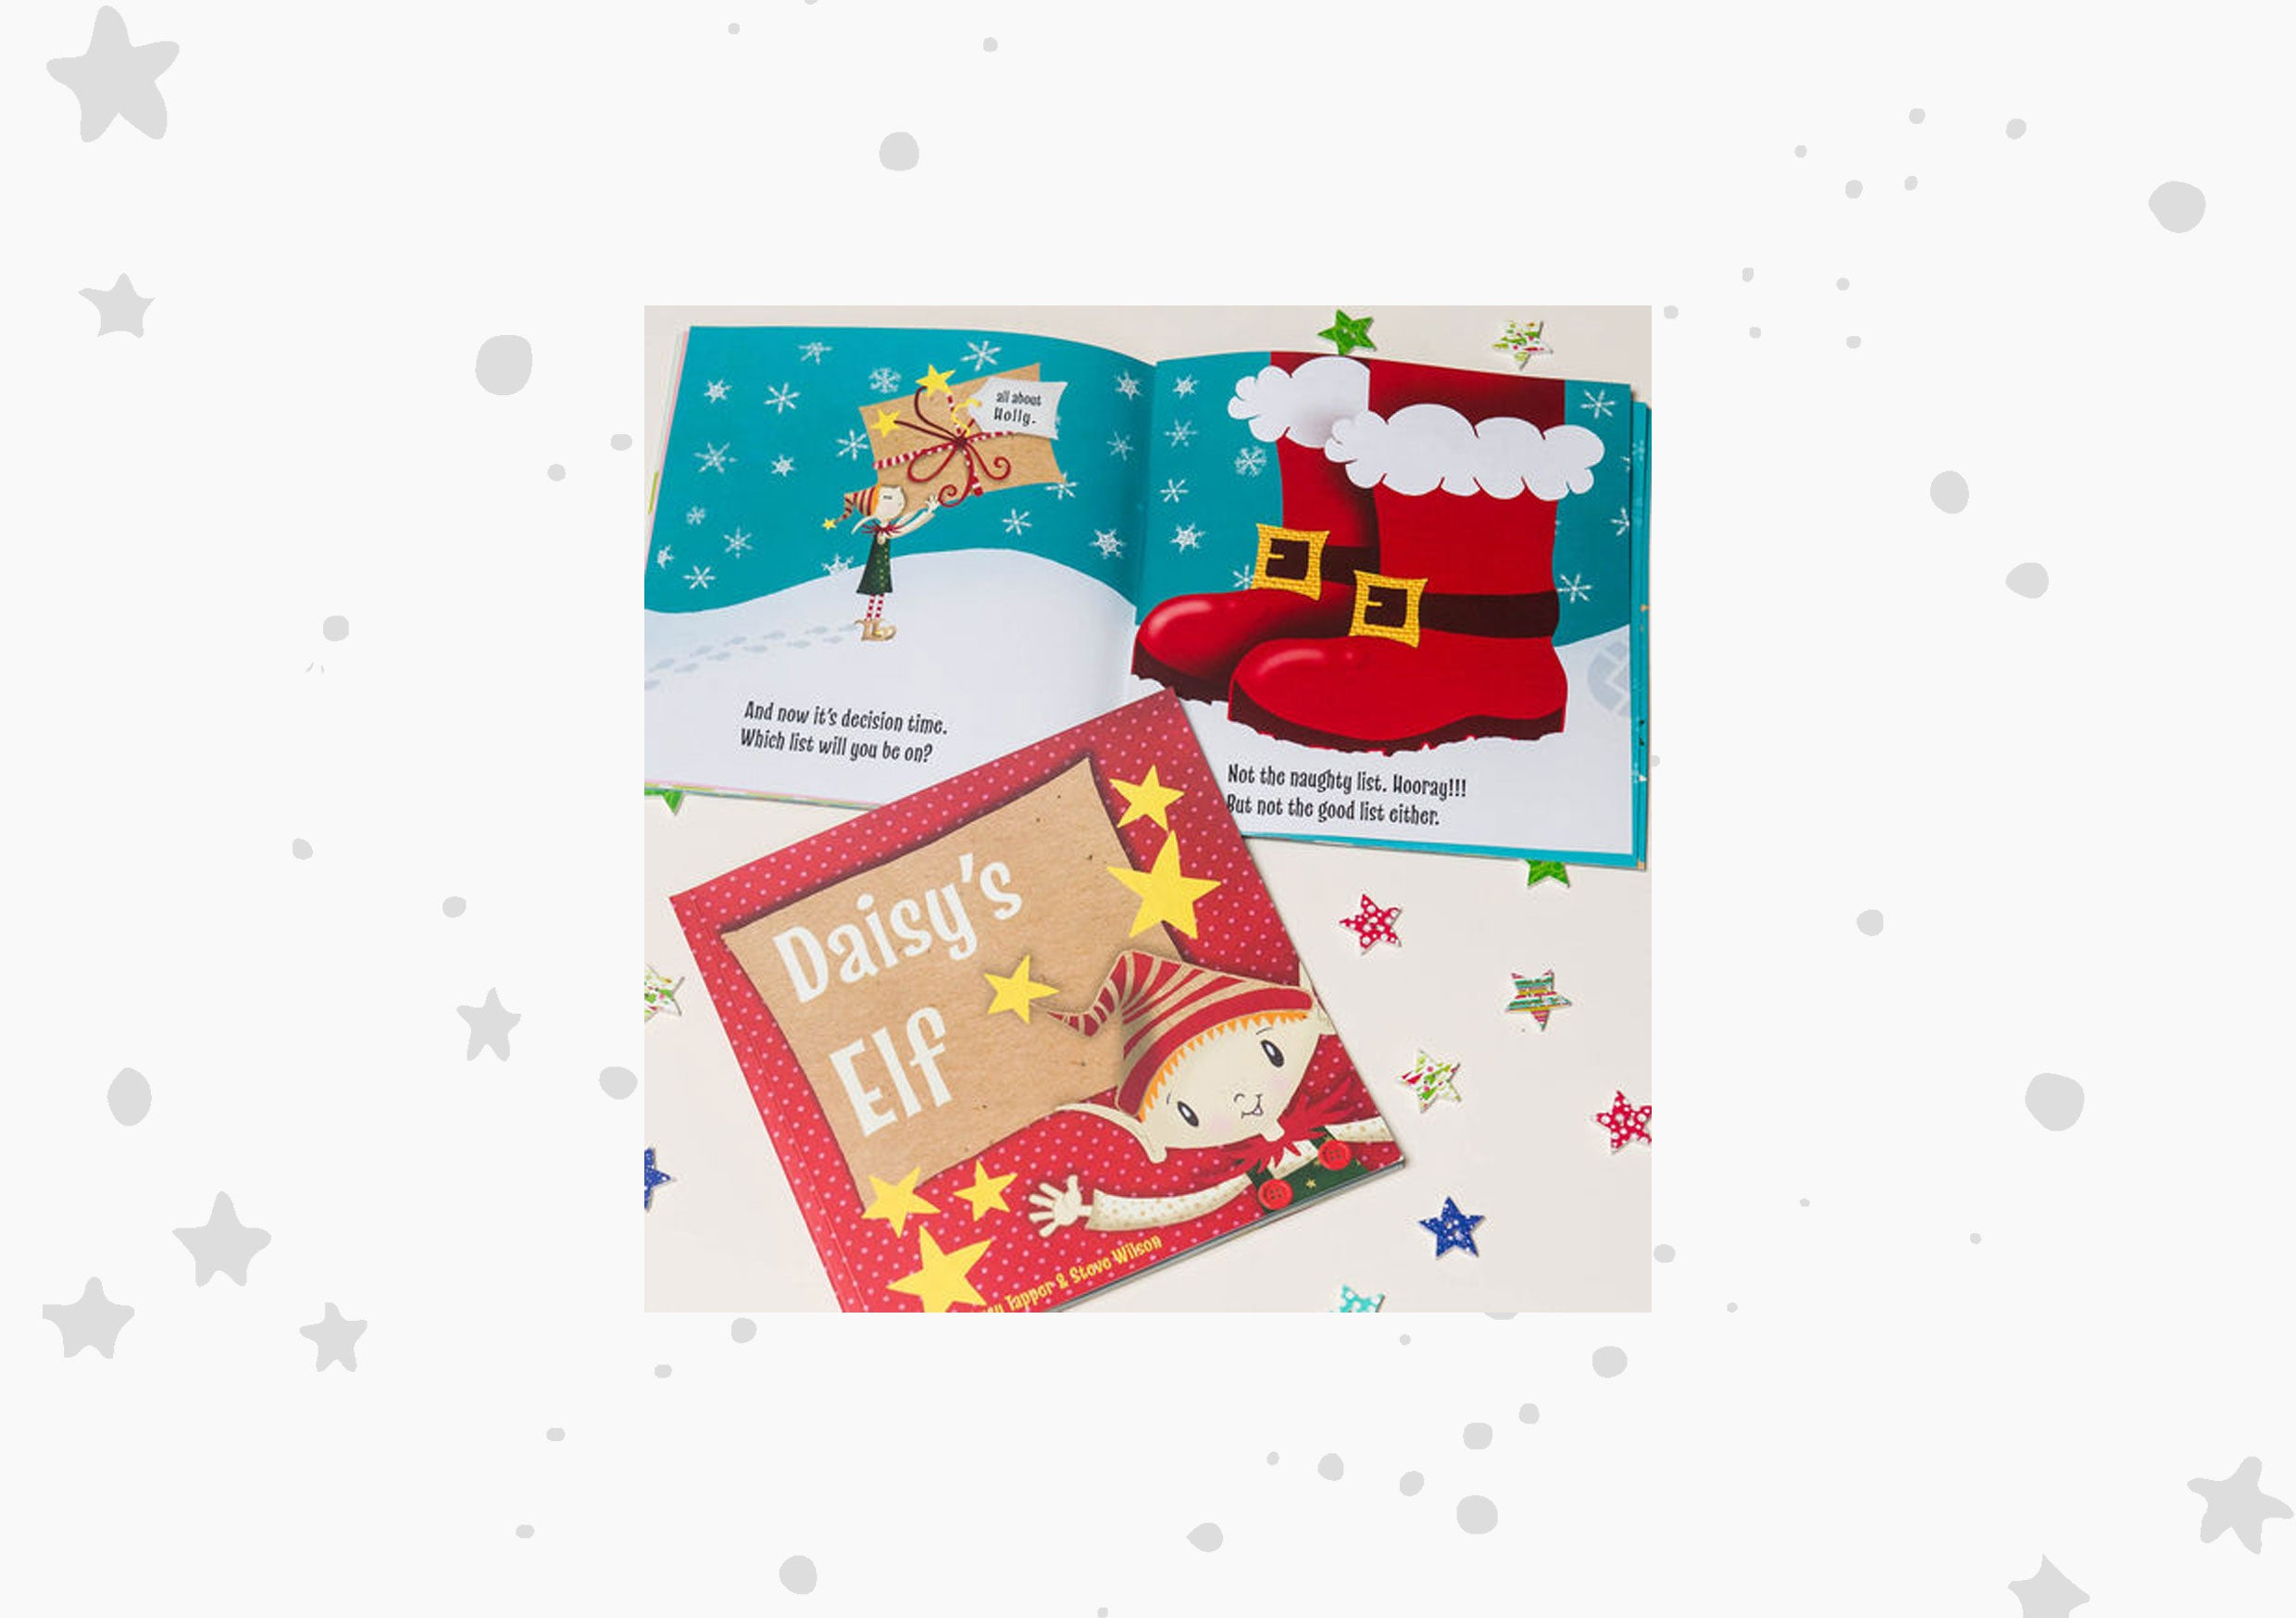 FromLucy 'Your Elf' Personalised Children's Christmas Story Book